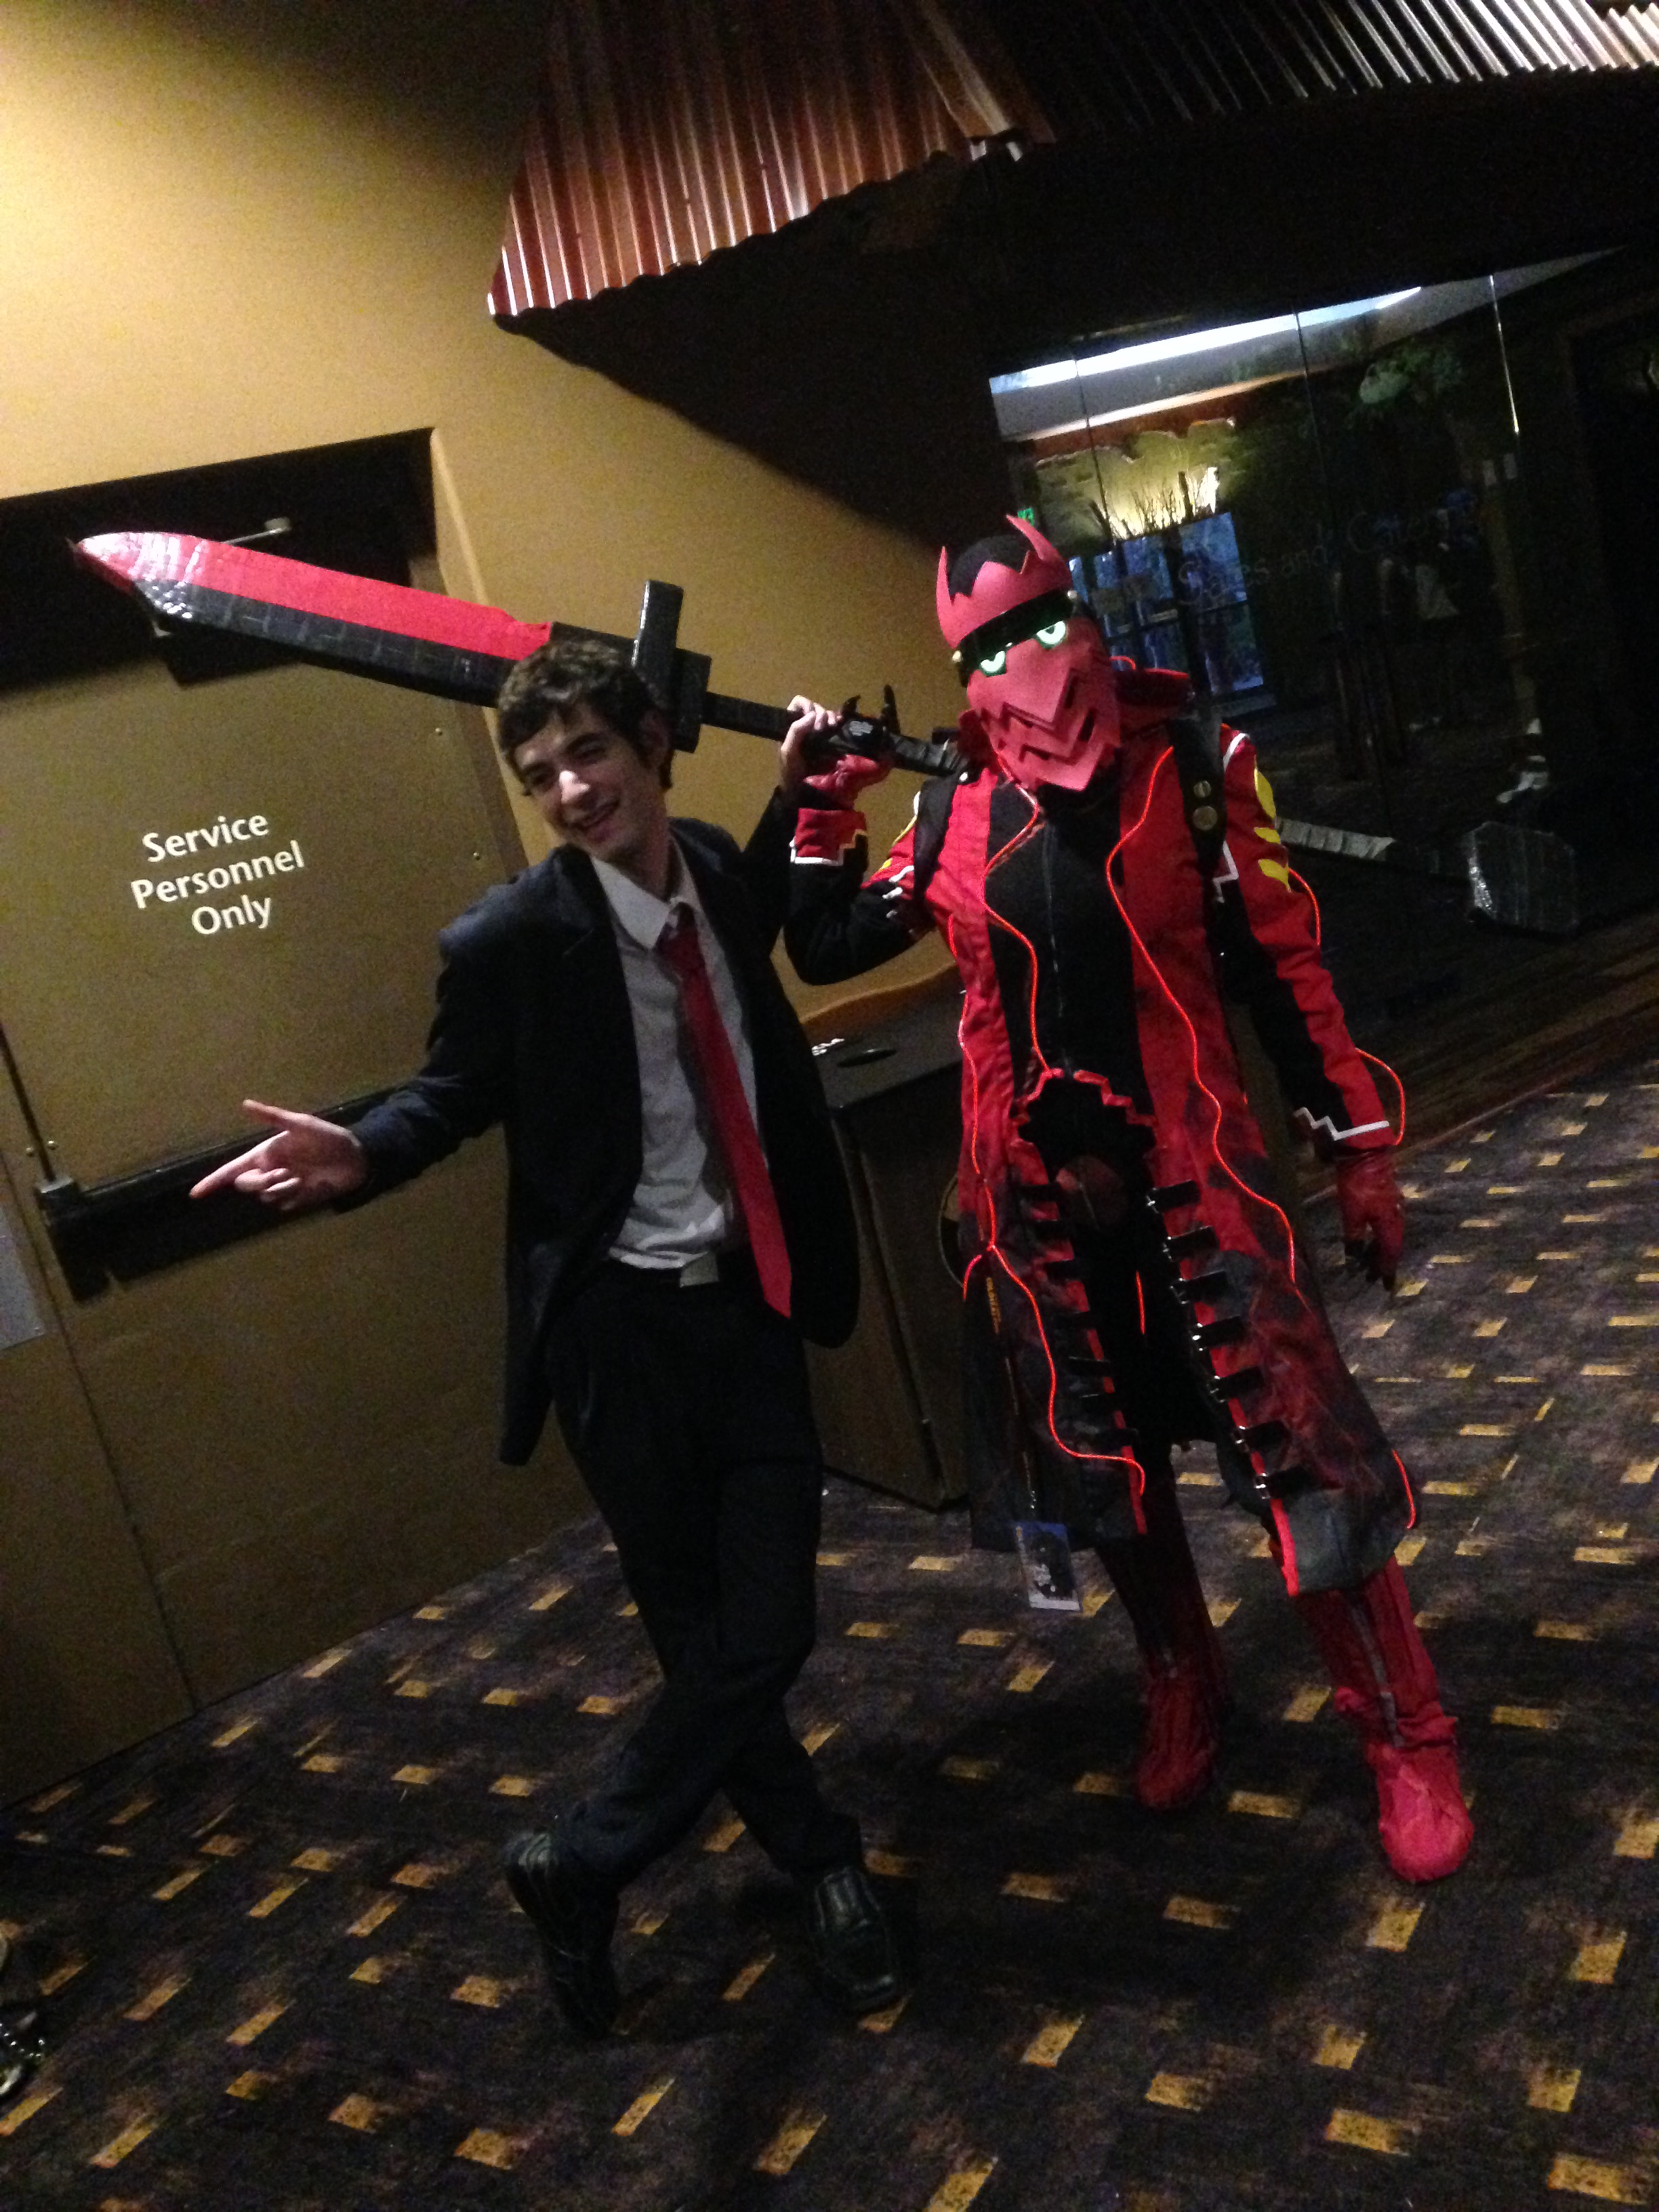 I always love seeing Persona cosplayers, and this Adachi/Mugatsu duo was awesome!